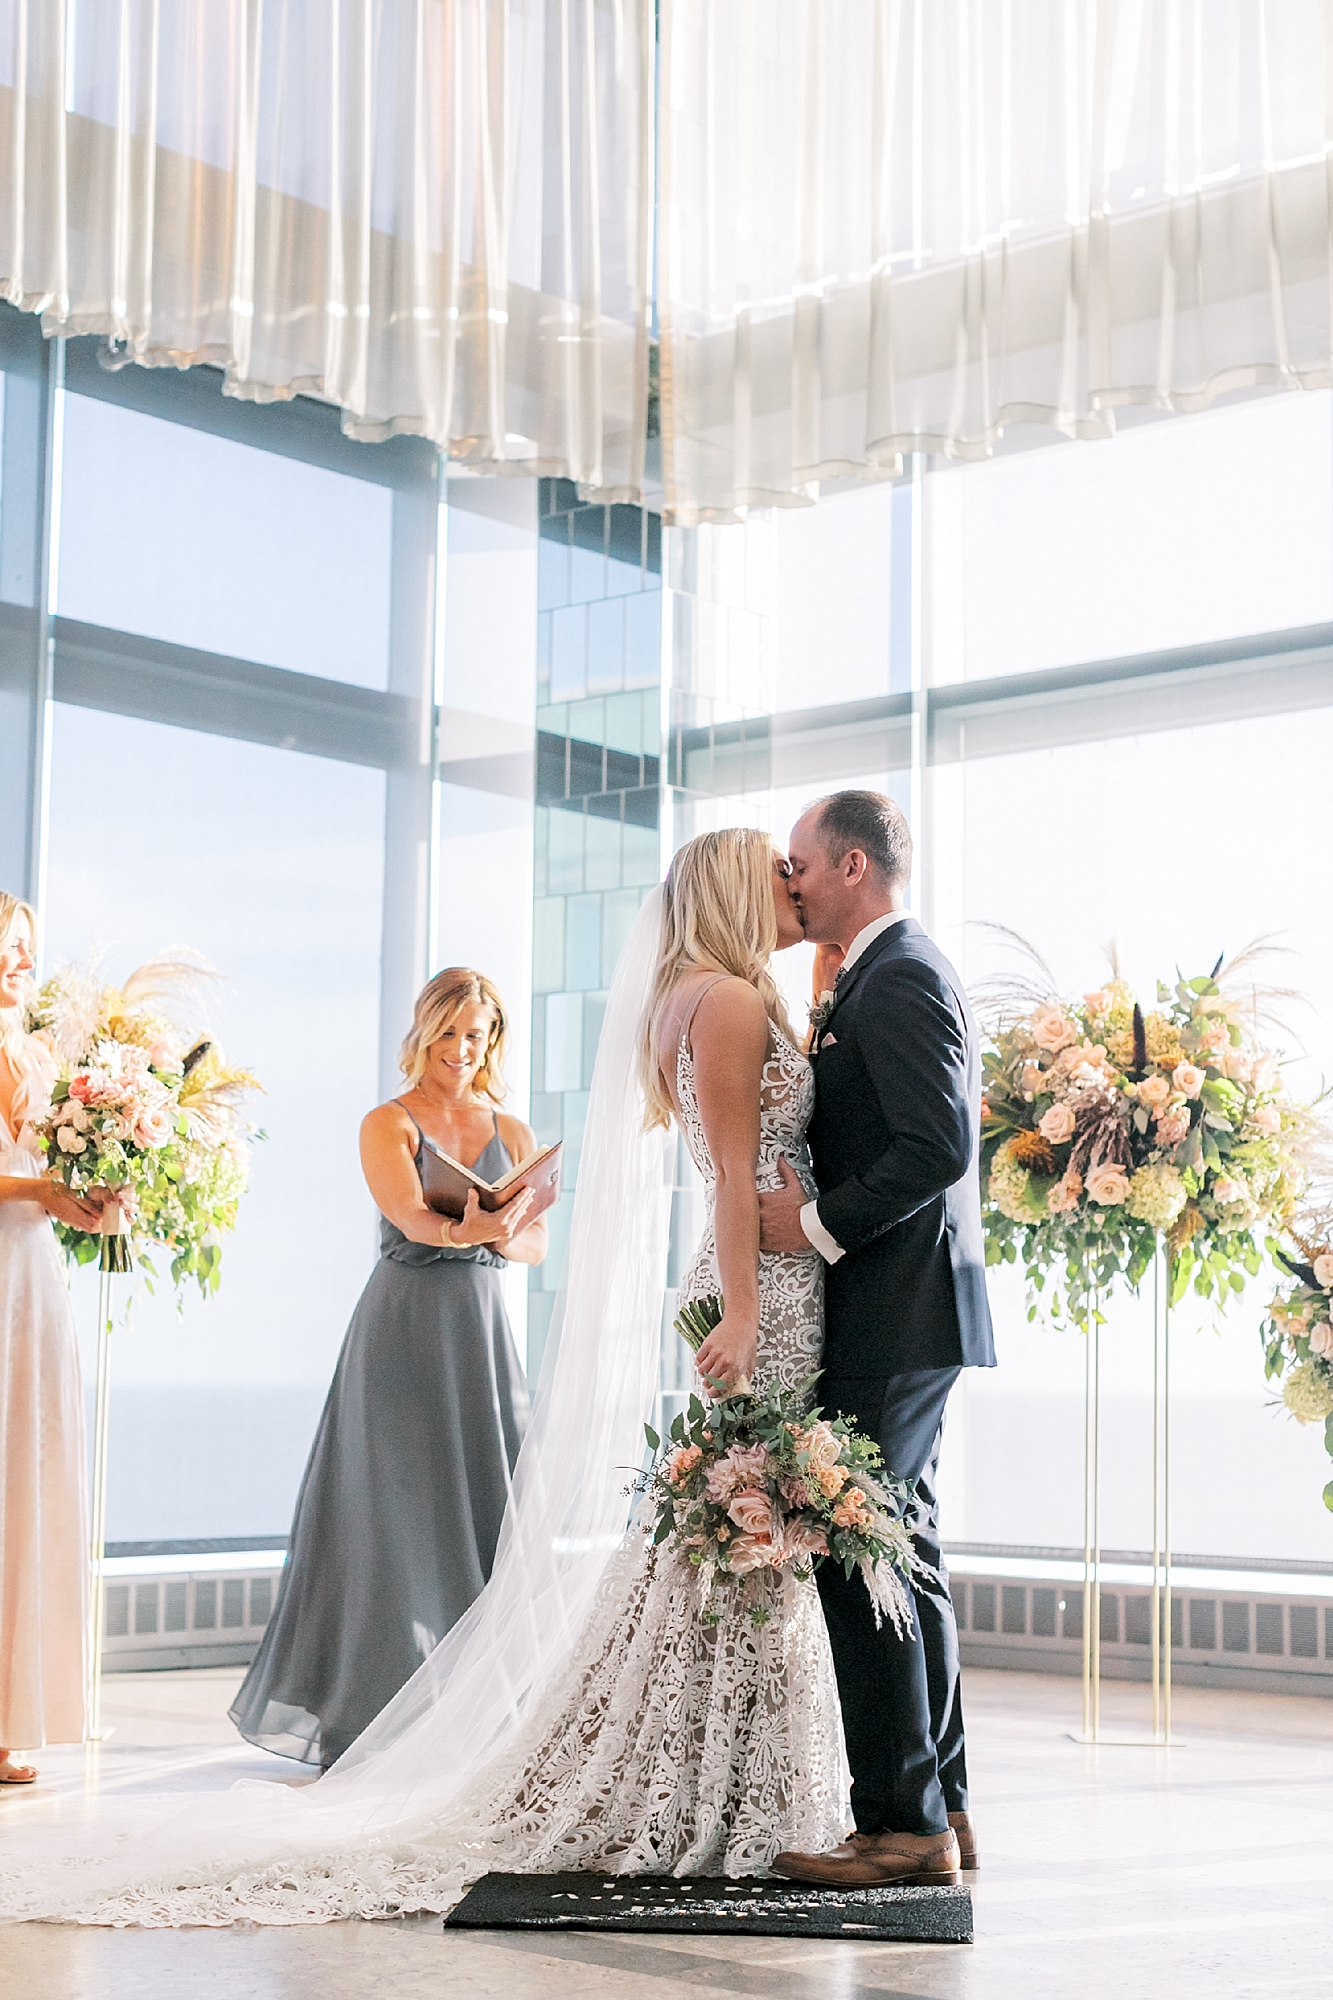 Stylish and Free Spirited Wedding Photography at One Atlantic in Atlantic City NJ by Magdalena Studios 0035 1